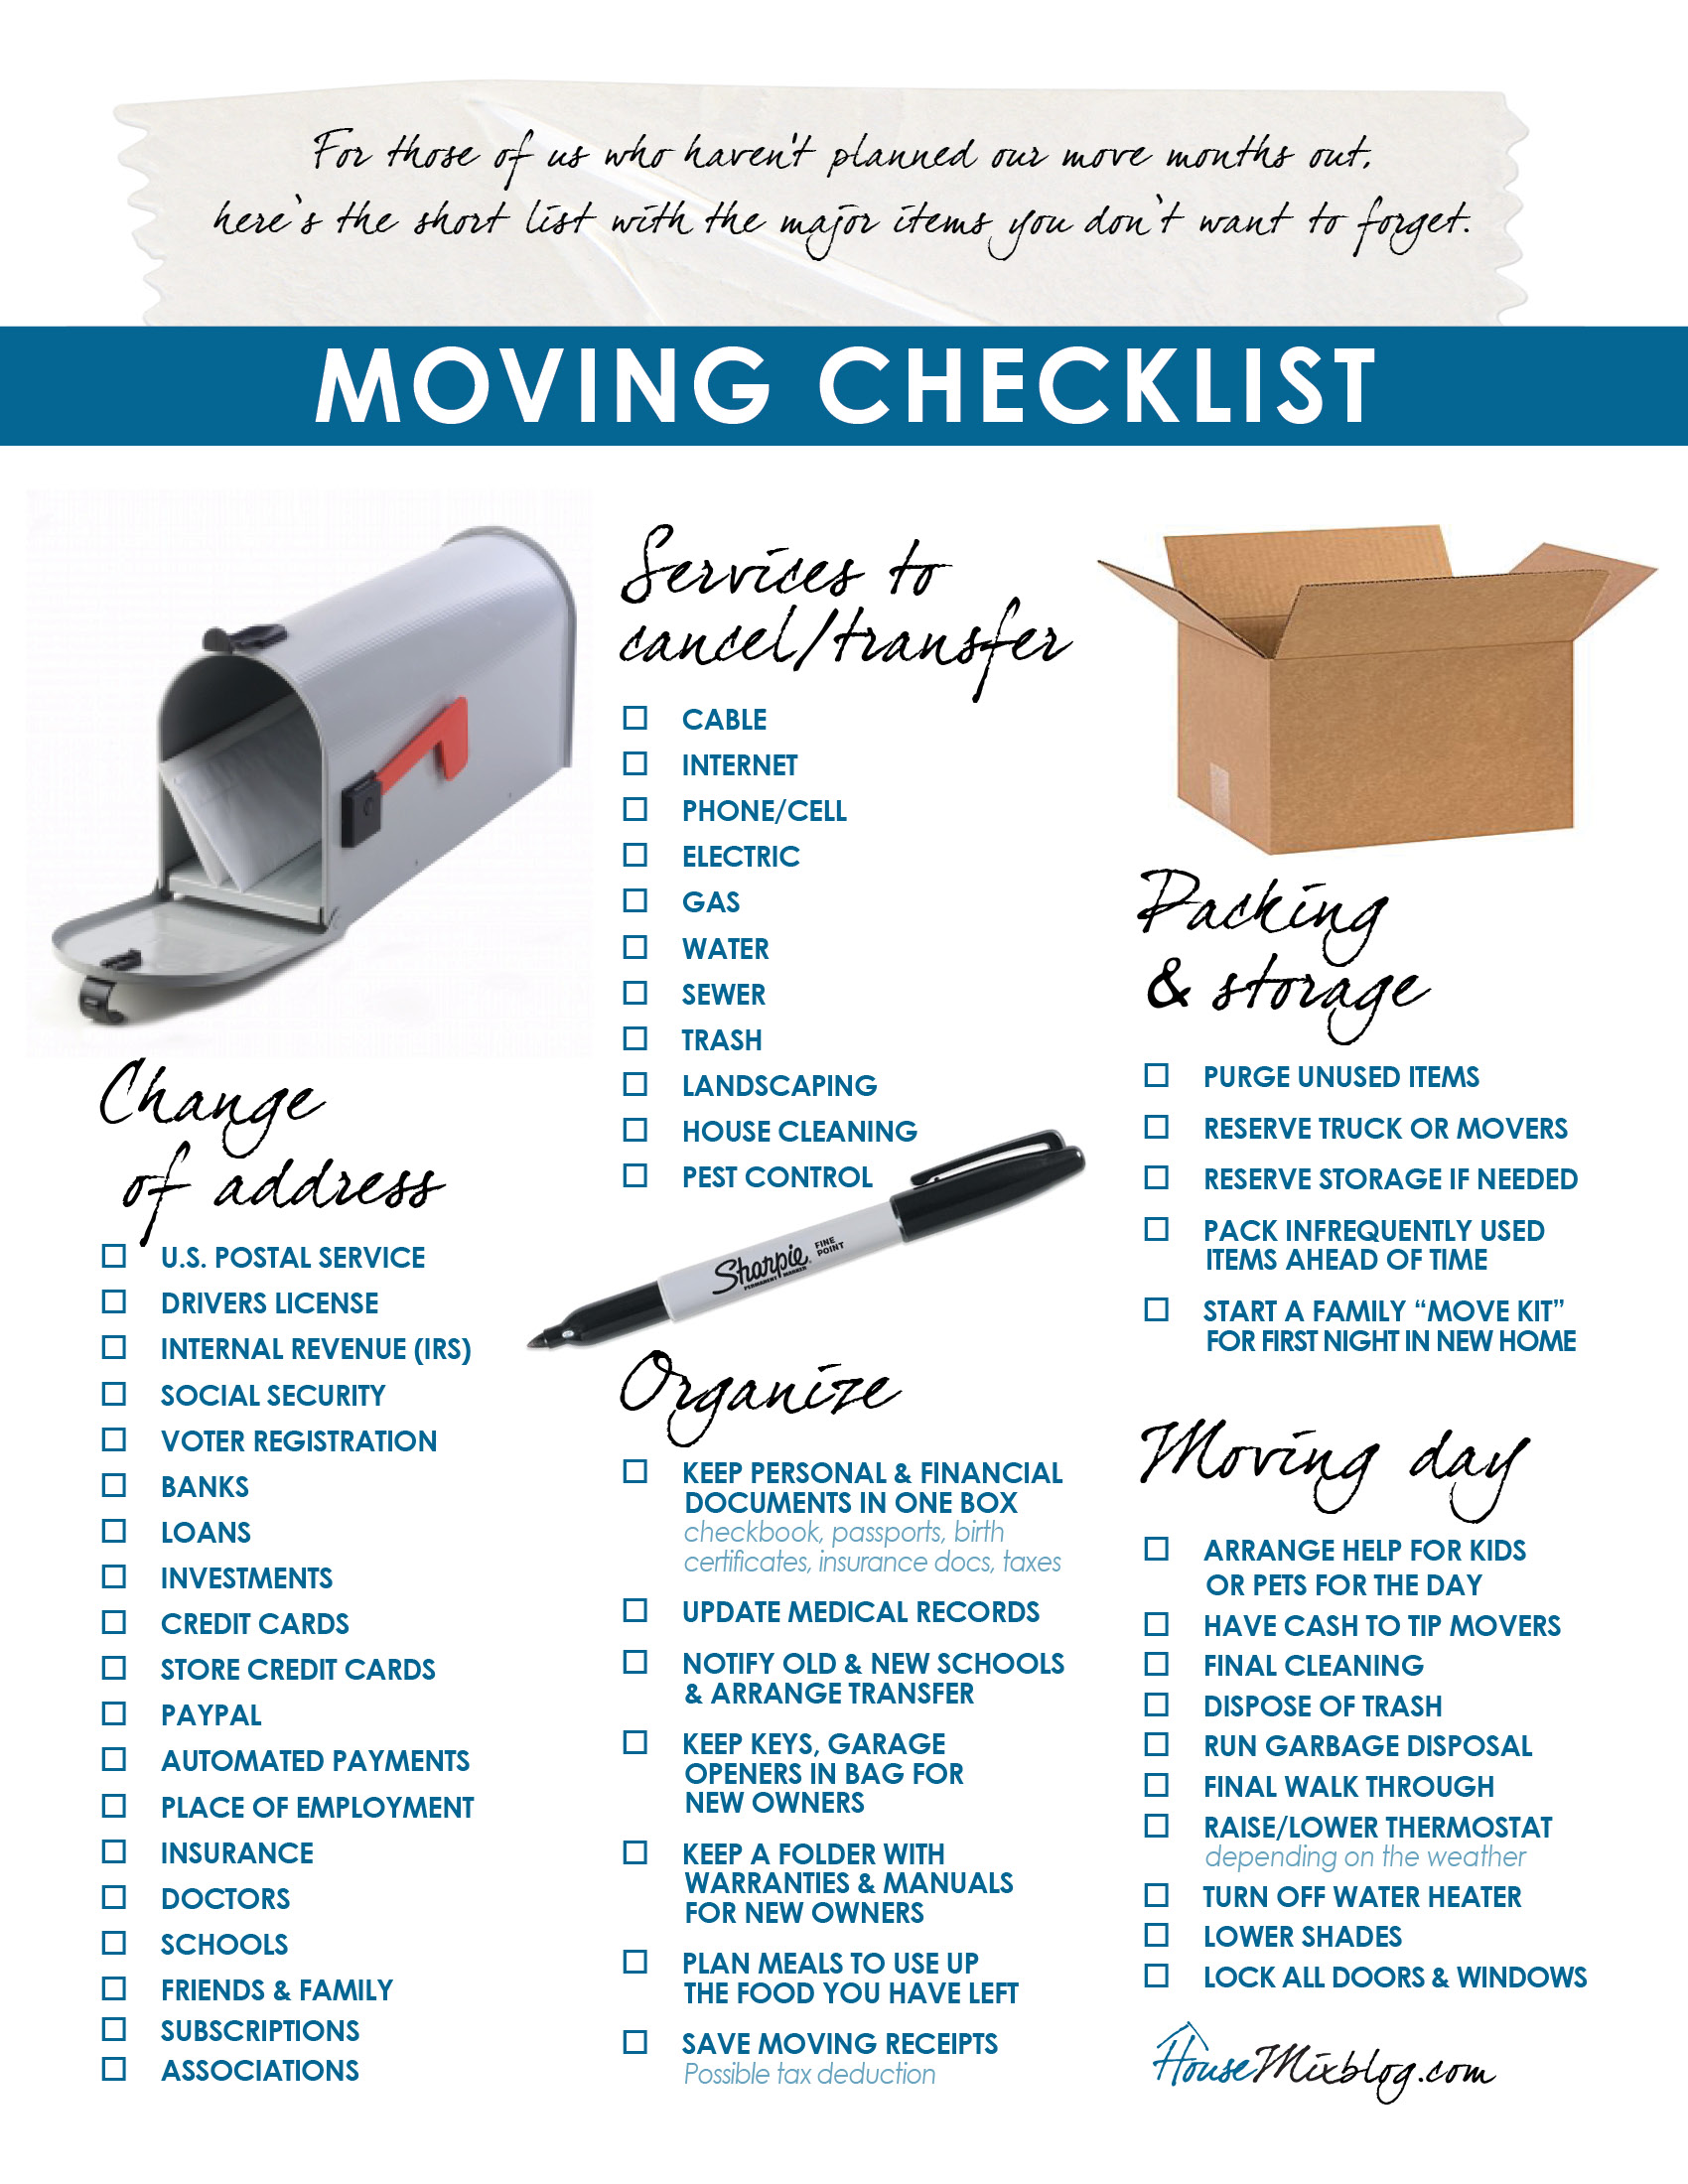 Click Image To Download Checklist